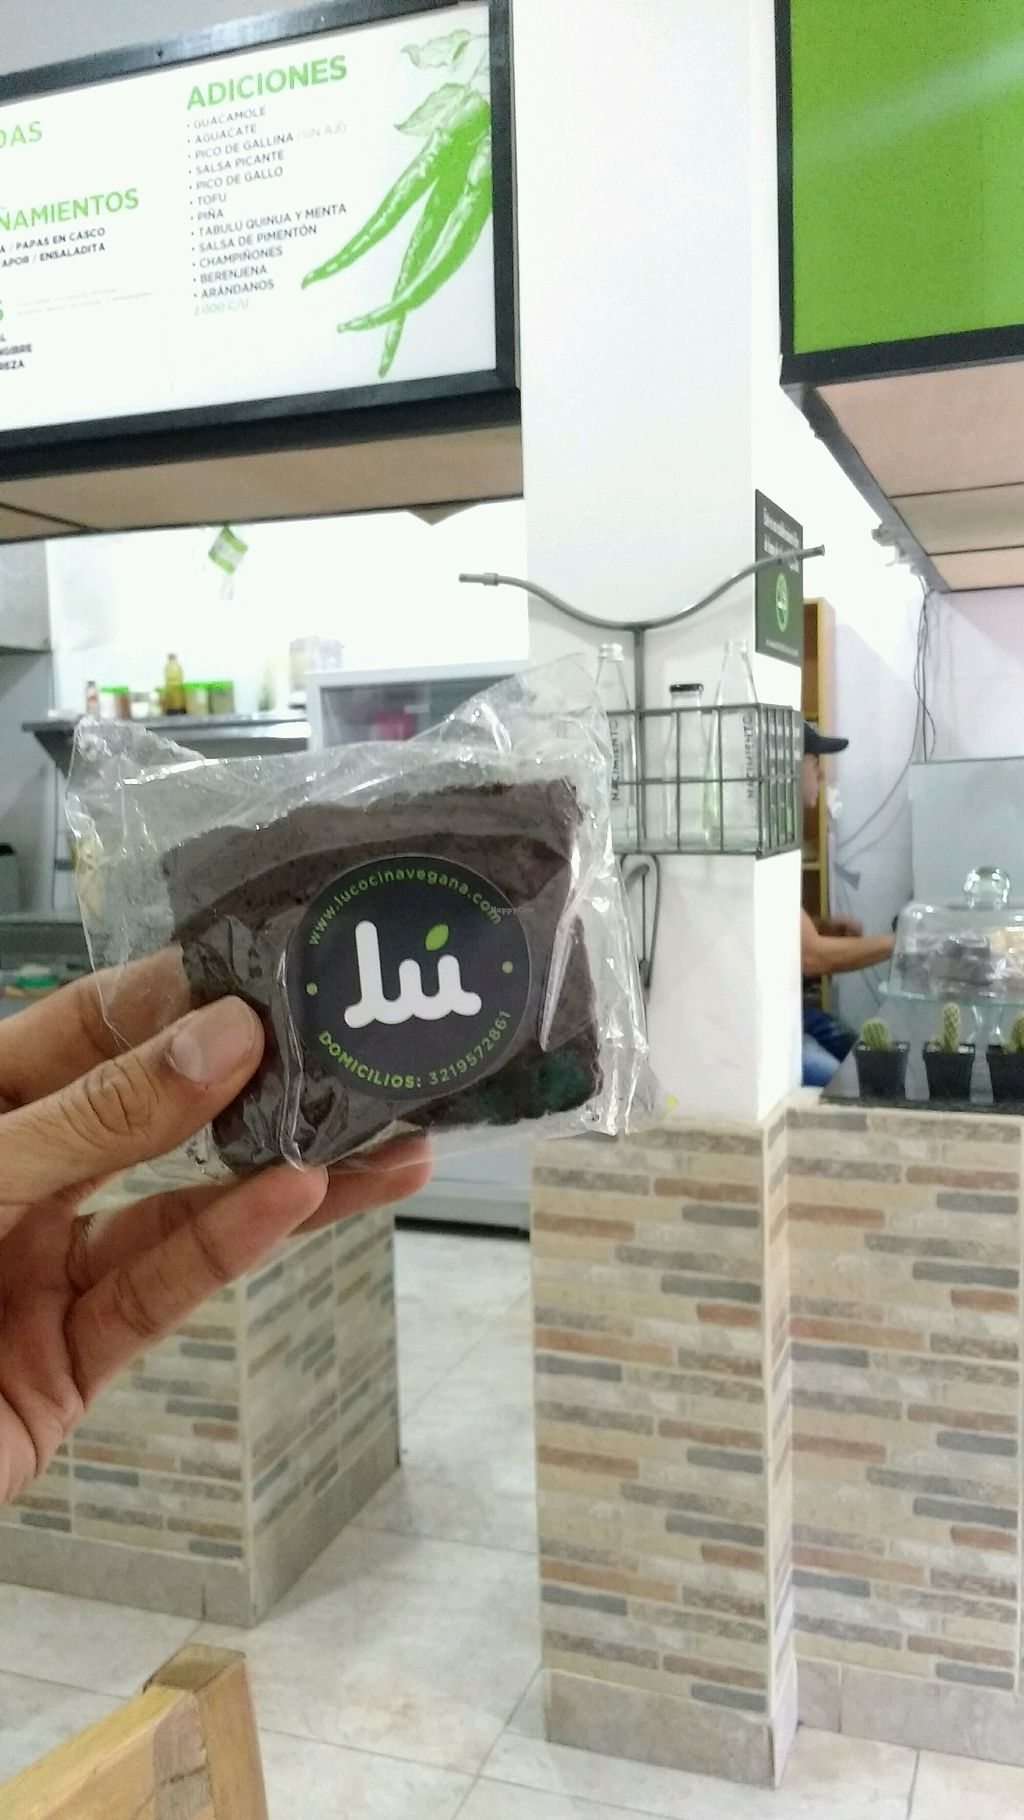 """Photo of Lu Cocina Vegana  by <a href=""""/members/profile/MaharamYoga"""">MaharamYoga</a> <br/>vegan brownies <br/> January 21, 2018  - <a href='/contact/abuse/image/75217/349487'>Report</a>"""